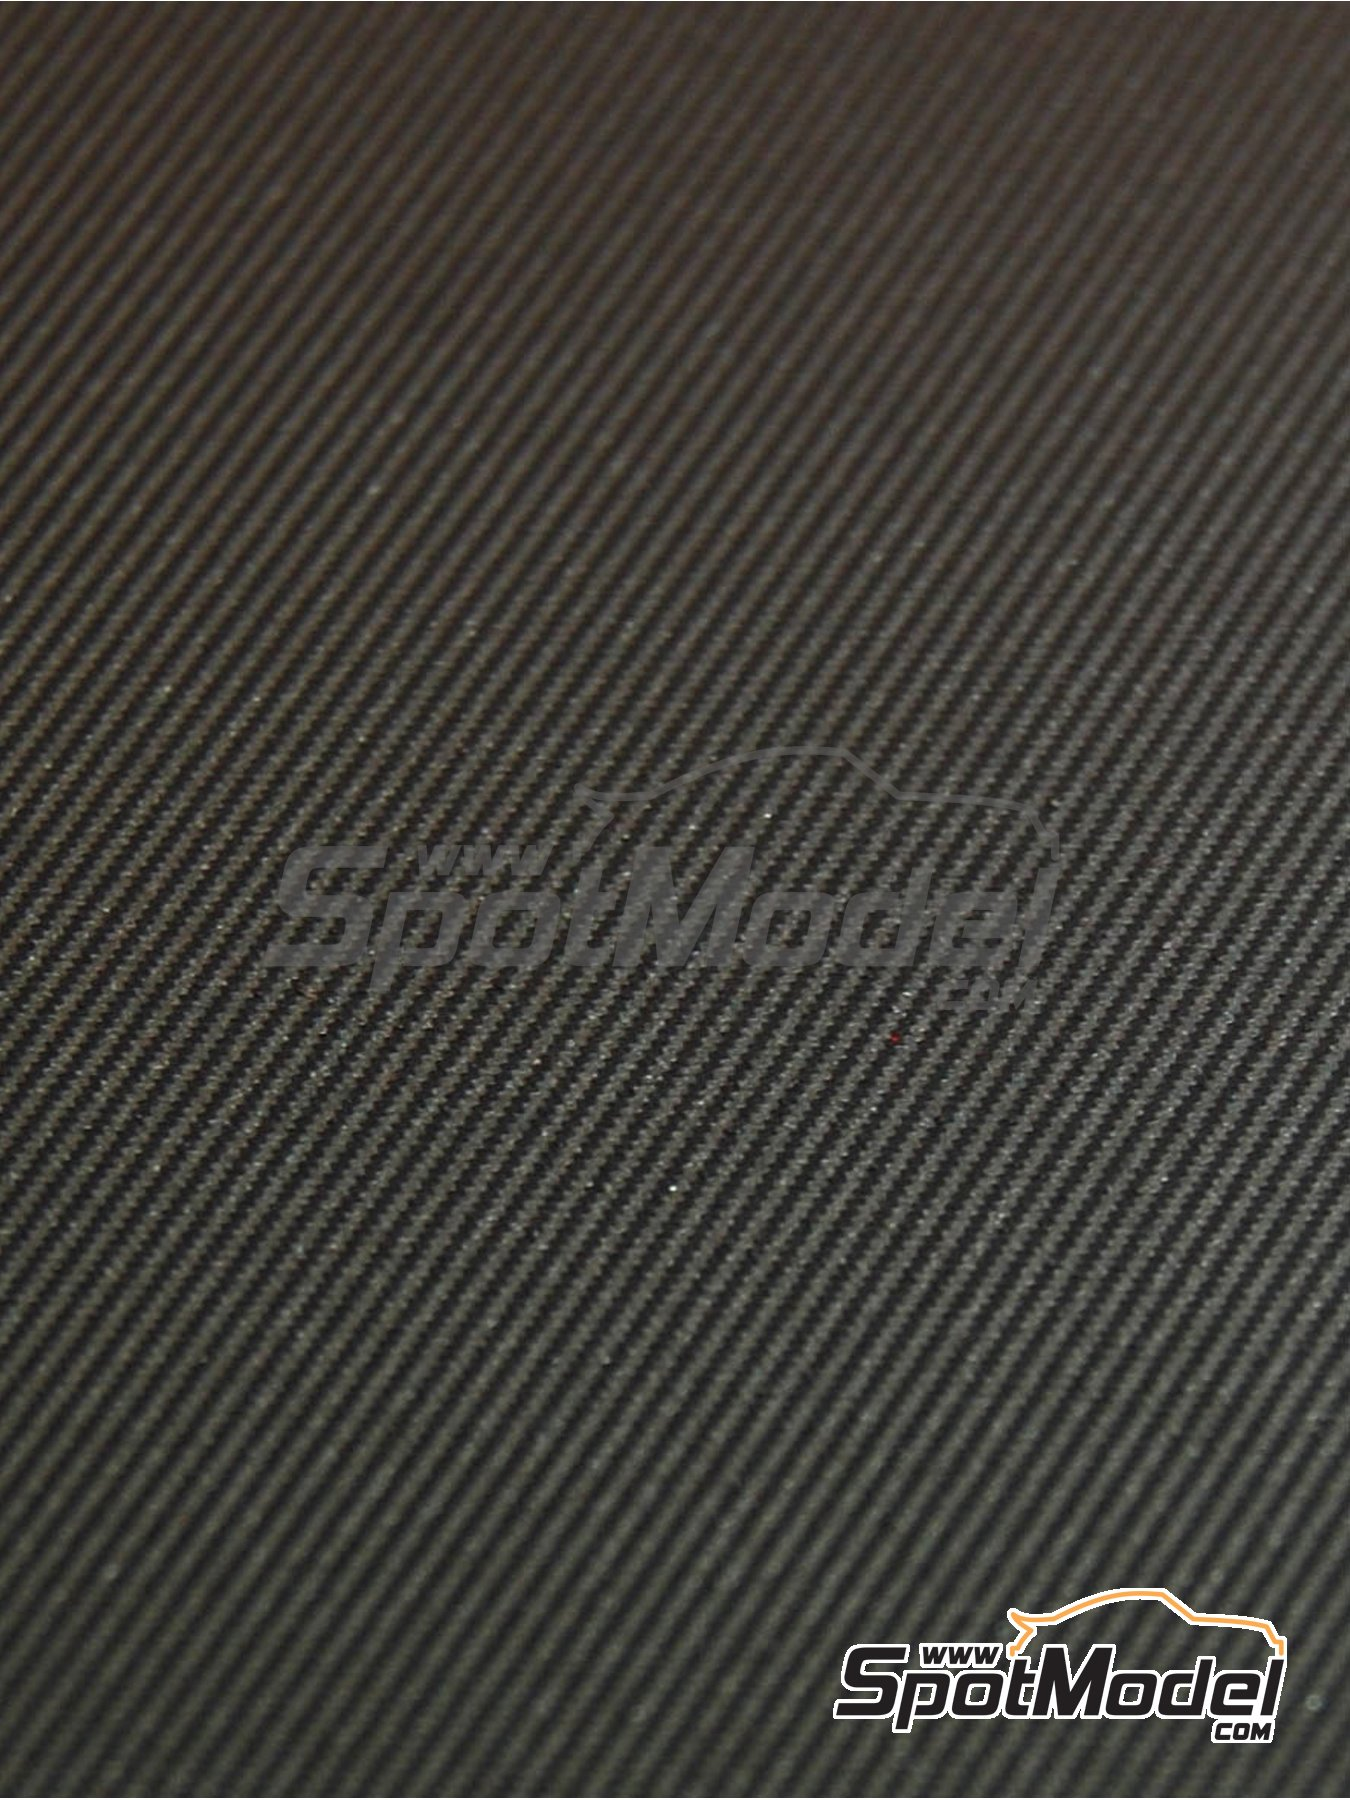 Twill weave carbon fiber - silver + black - Small size - 150x210mm   Decals manufactured by Scale Production (ref.SPD24050) image